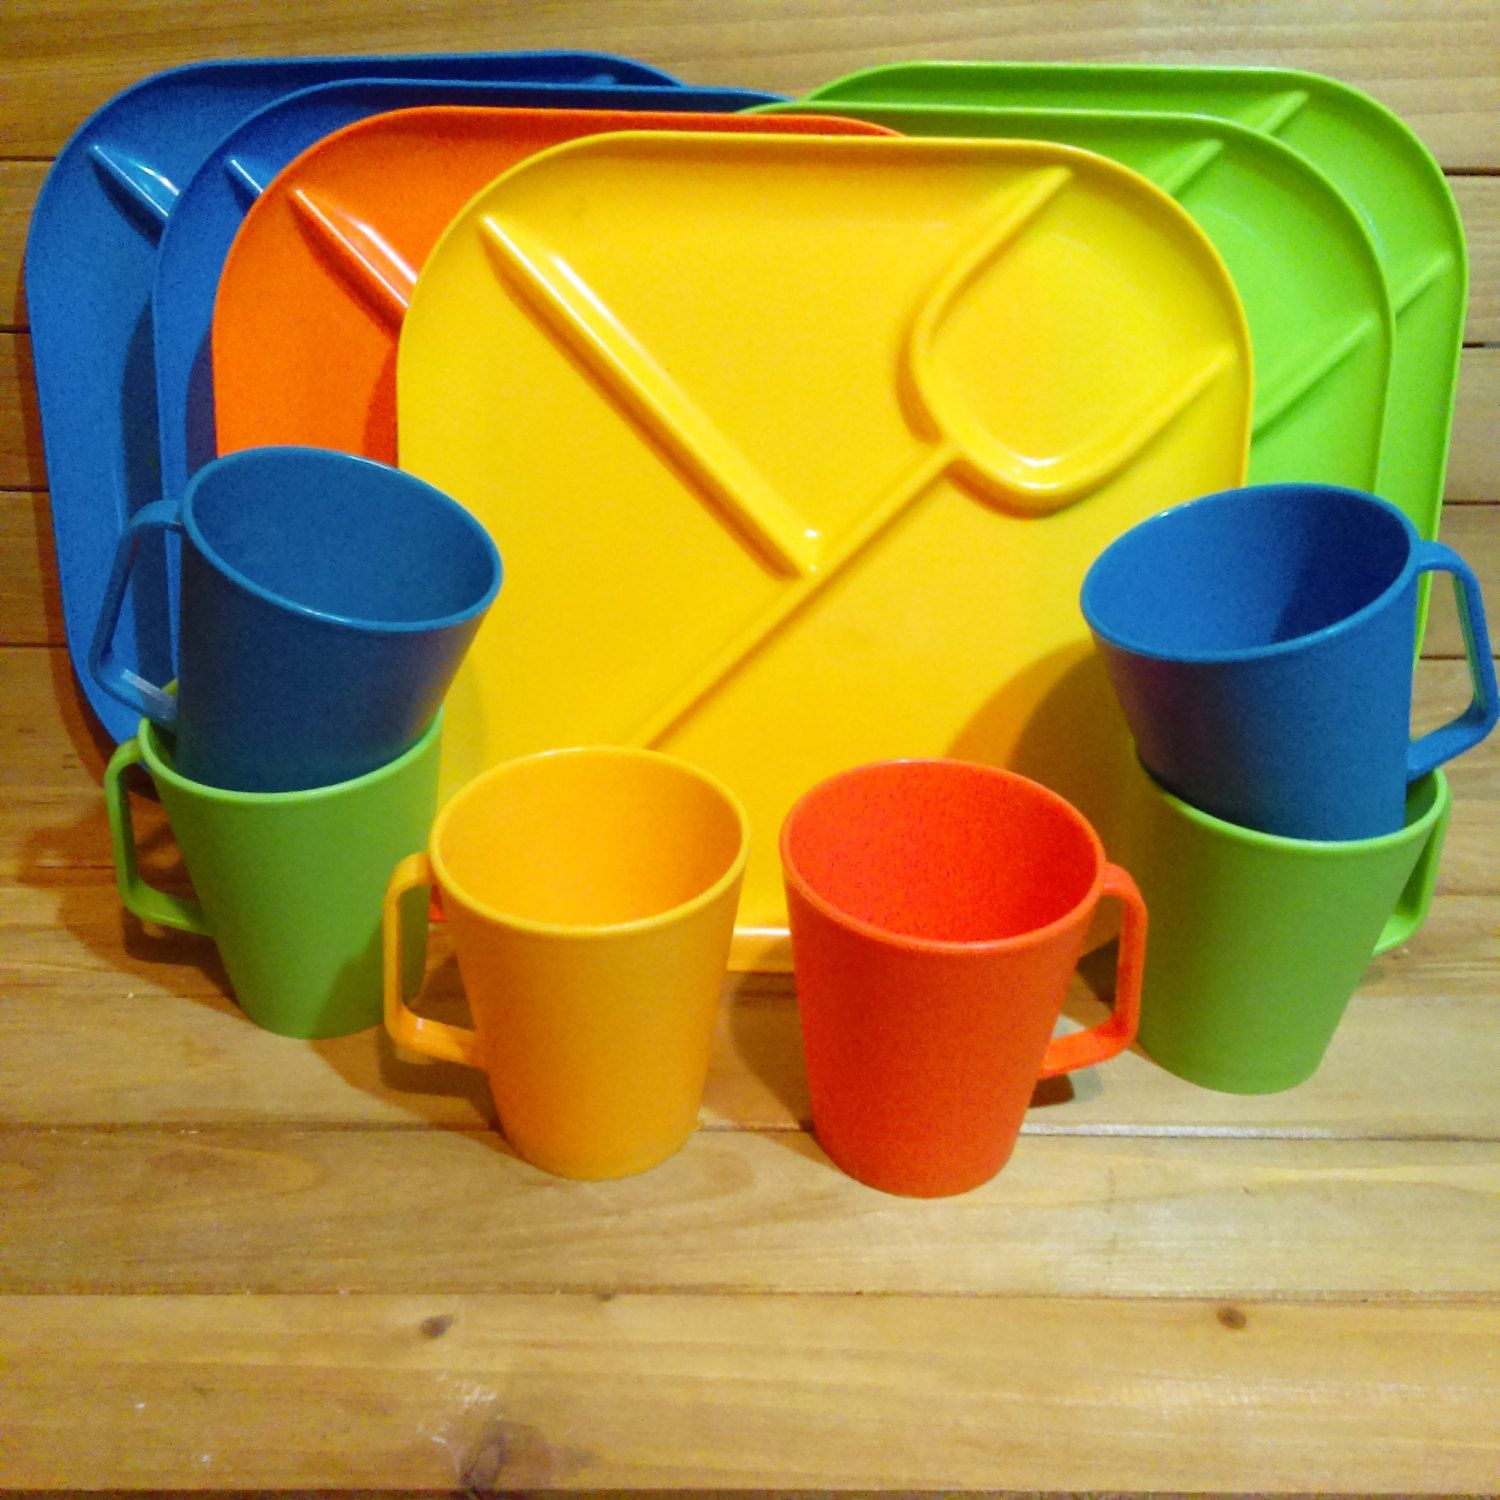 Vintage Children\u0027s Picnic Set Plastic Cups and Plates Divided Plastic Food Trays C&ing & Vintage Children\u0027s Picnic Set Plastic Cups and Plates Divided ...